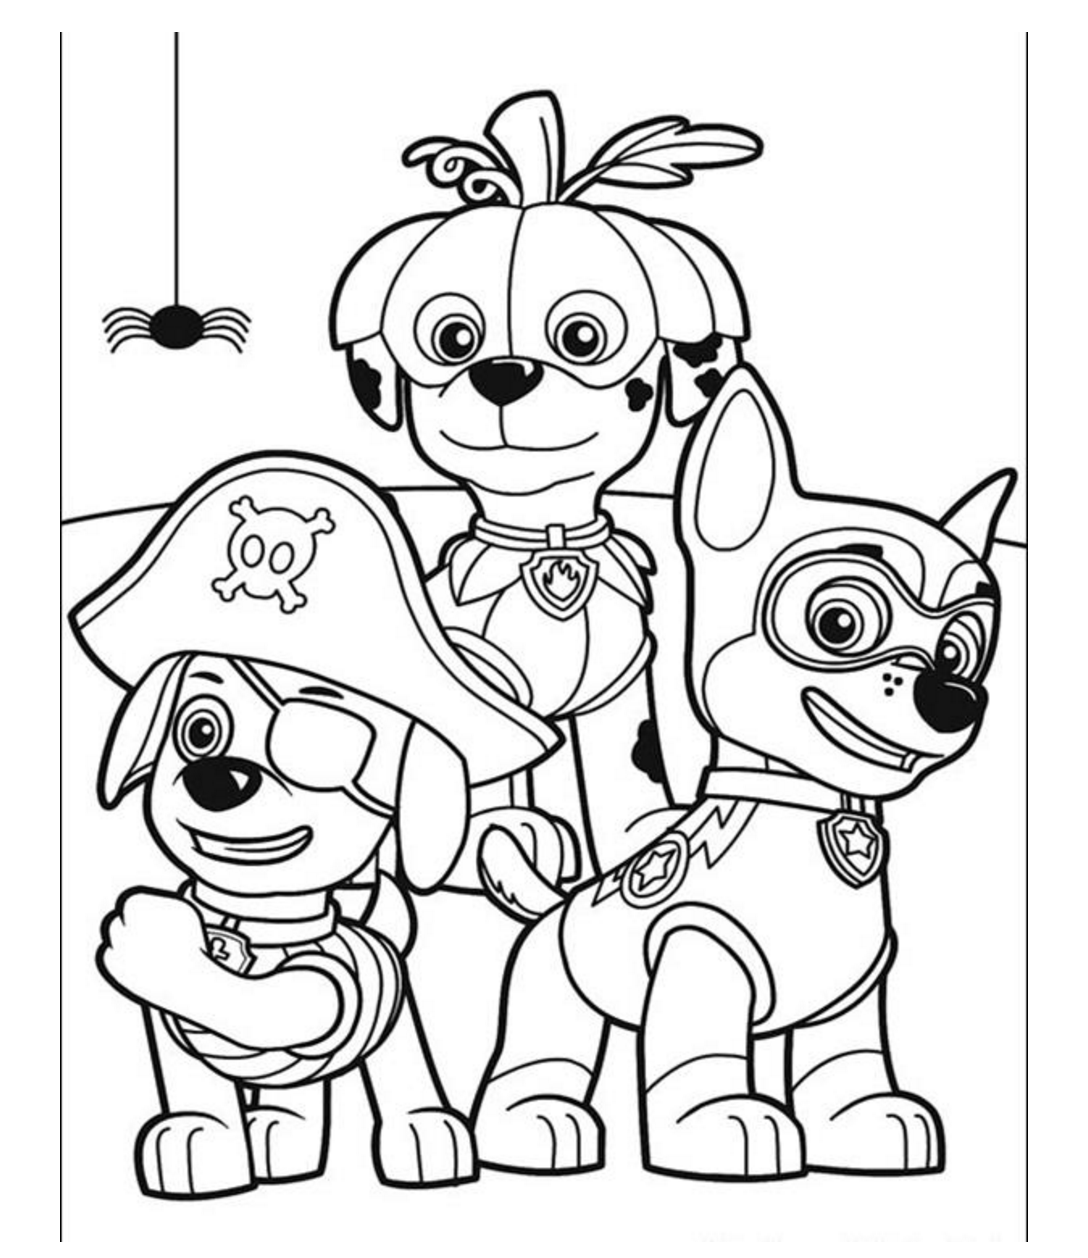 Paw Patrol On Halloween Coloring Pages Prente Pinterest Paw